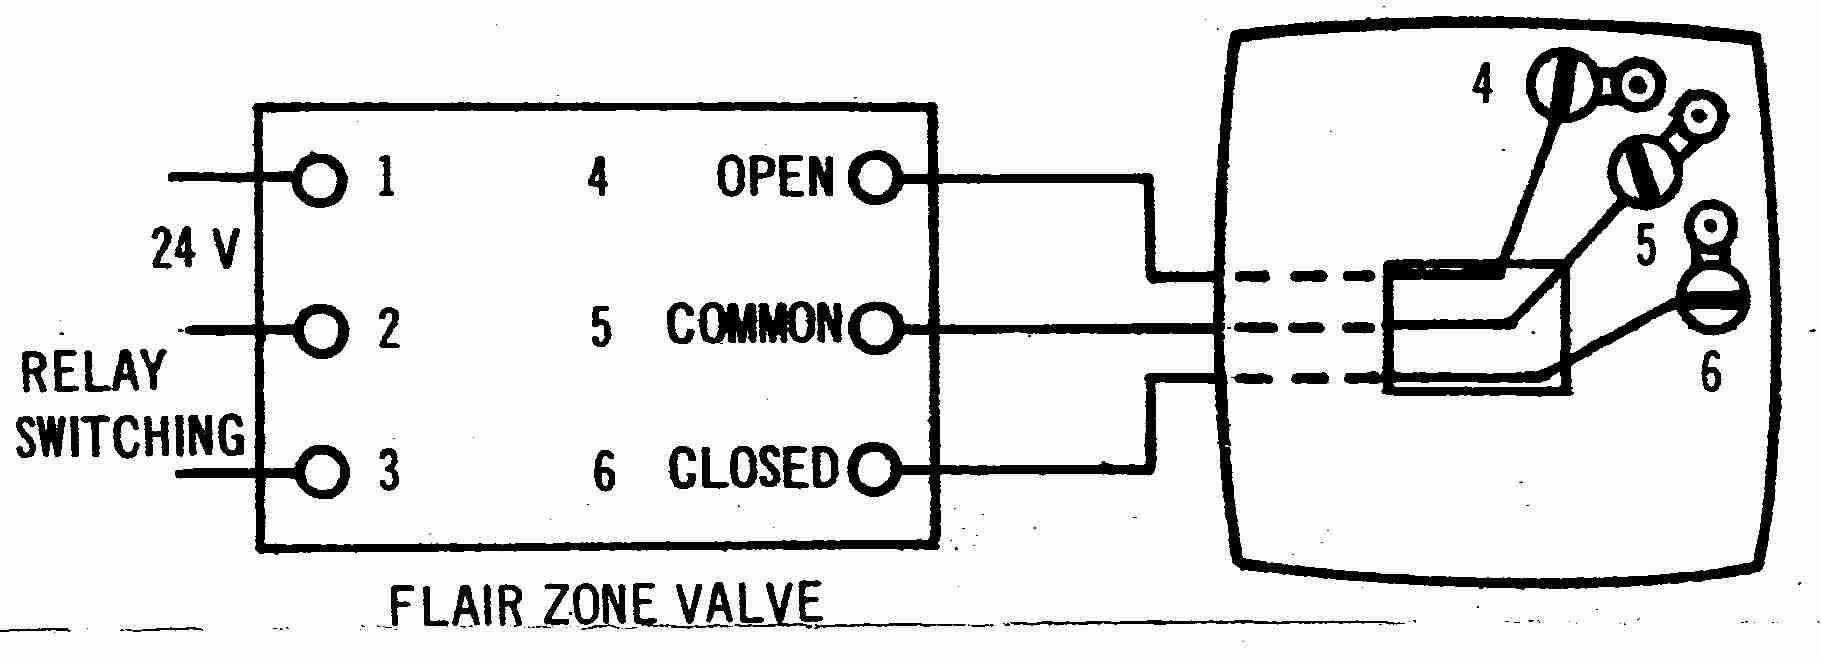 zone valve wiring installation instructions guide to heating flair 3 wire thermostat wiring controlling a zone valve